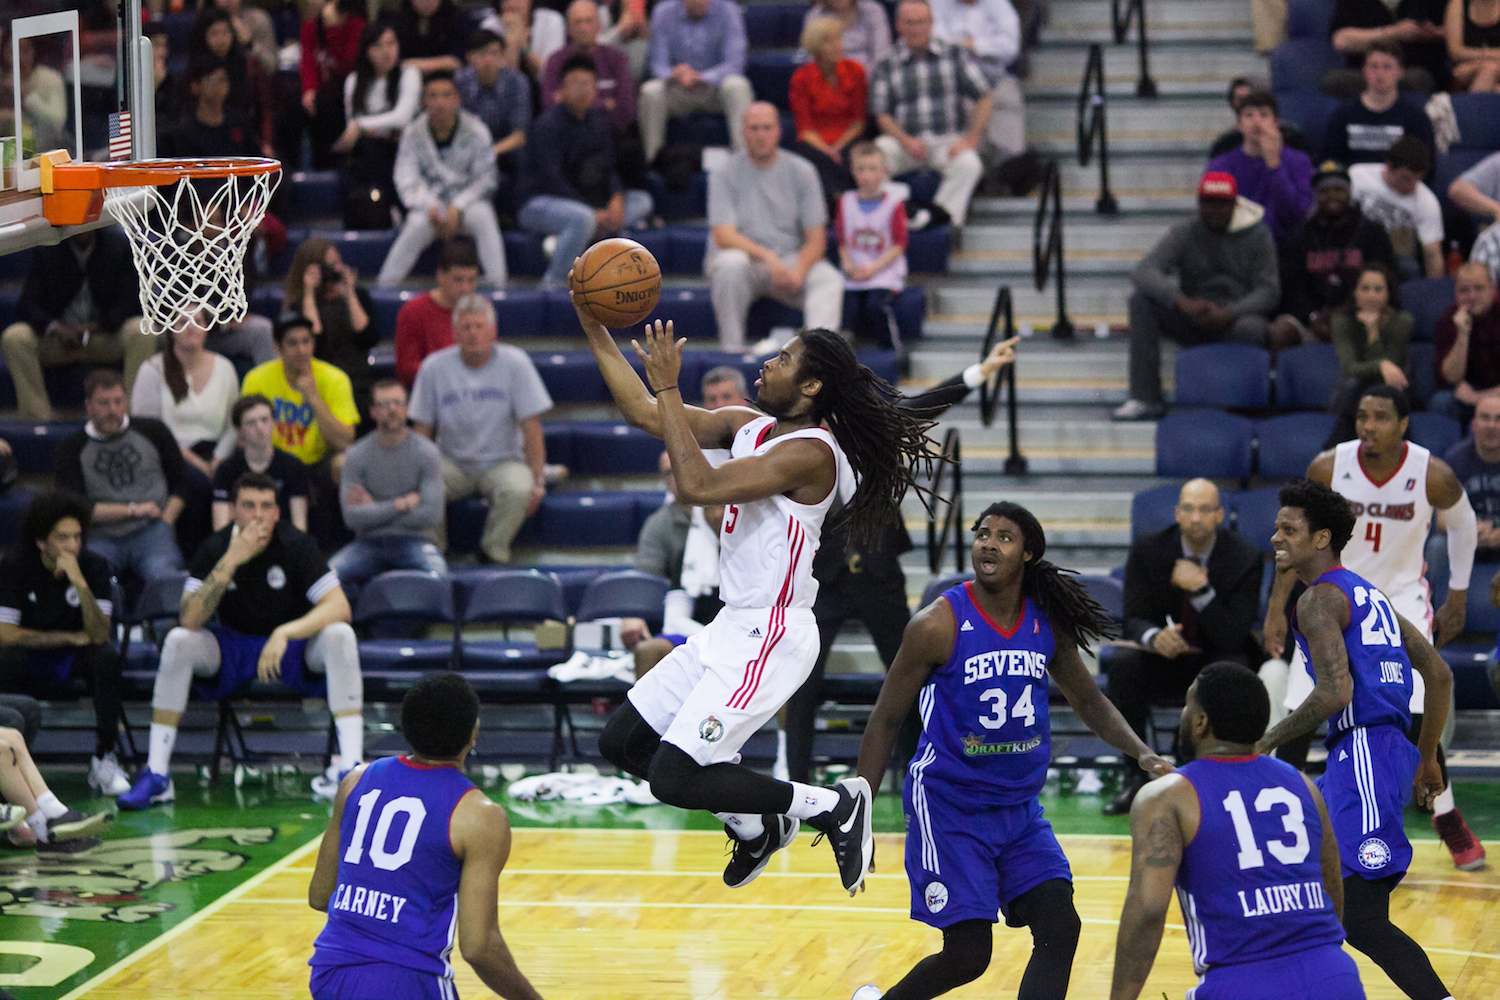 Marcus Thornton of the Maine Red Claws leaps up to a basket at the Portland Expo,Thursday, March 31, 2016.